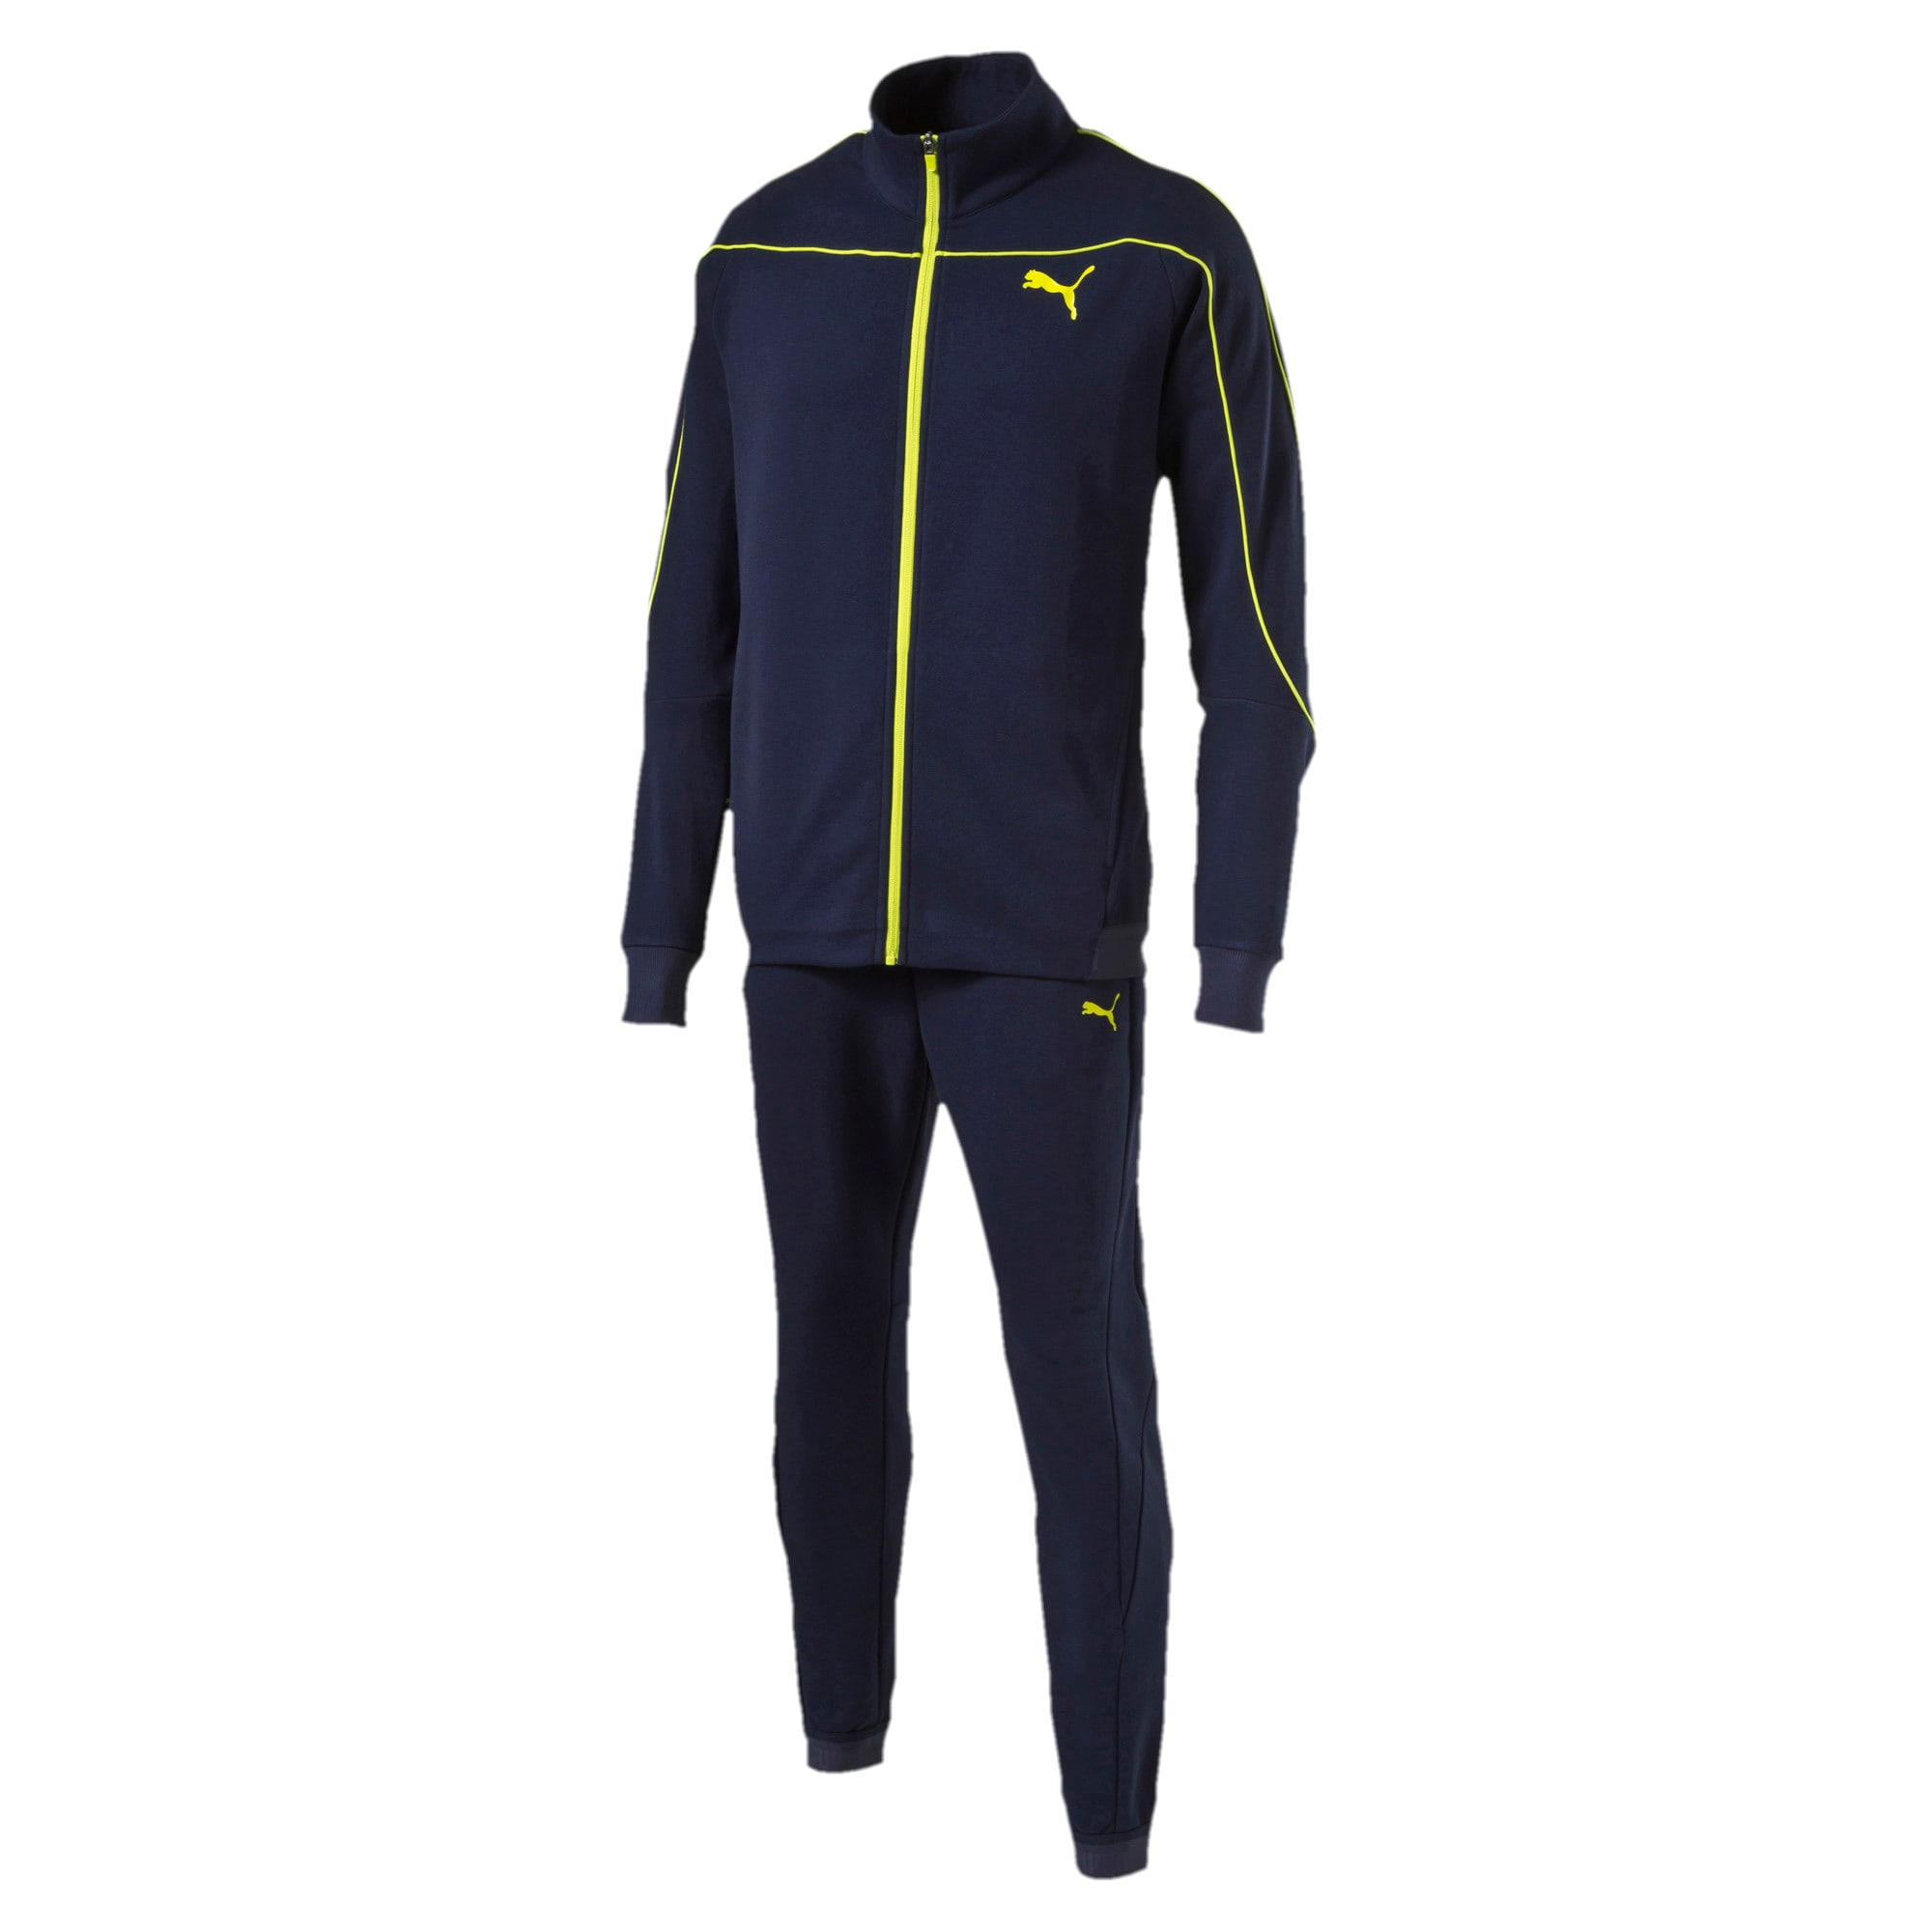 Thumbnail 1 of STYLE Stretch Suit, Peacoat, medium-IND